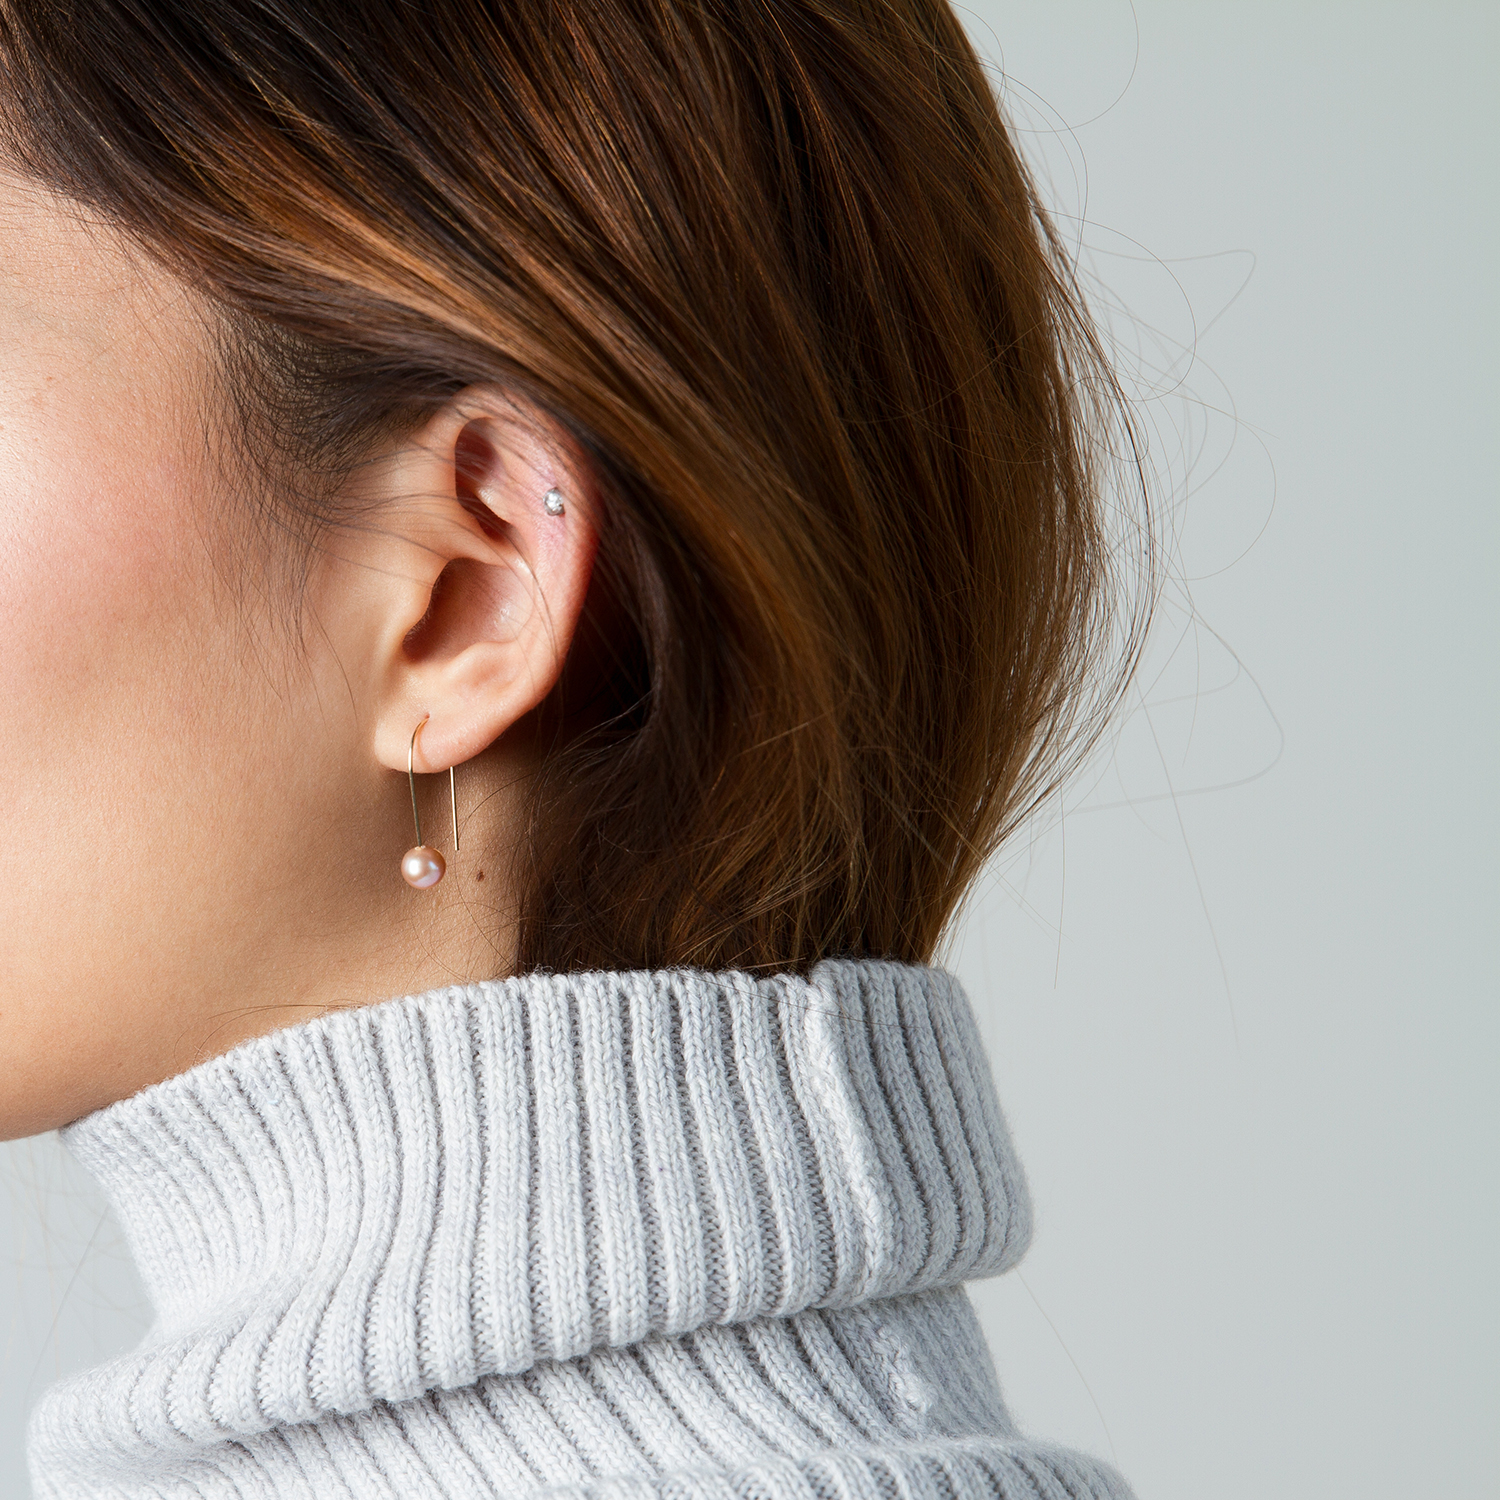 The MIE Collection,jewelry pieces designed for everyday wear, for every woman.